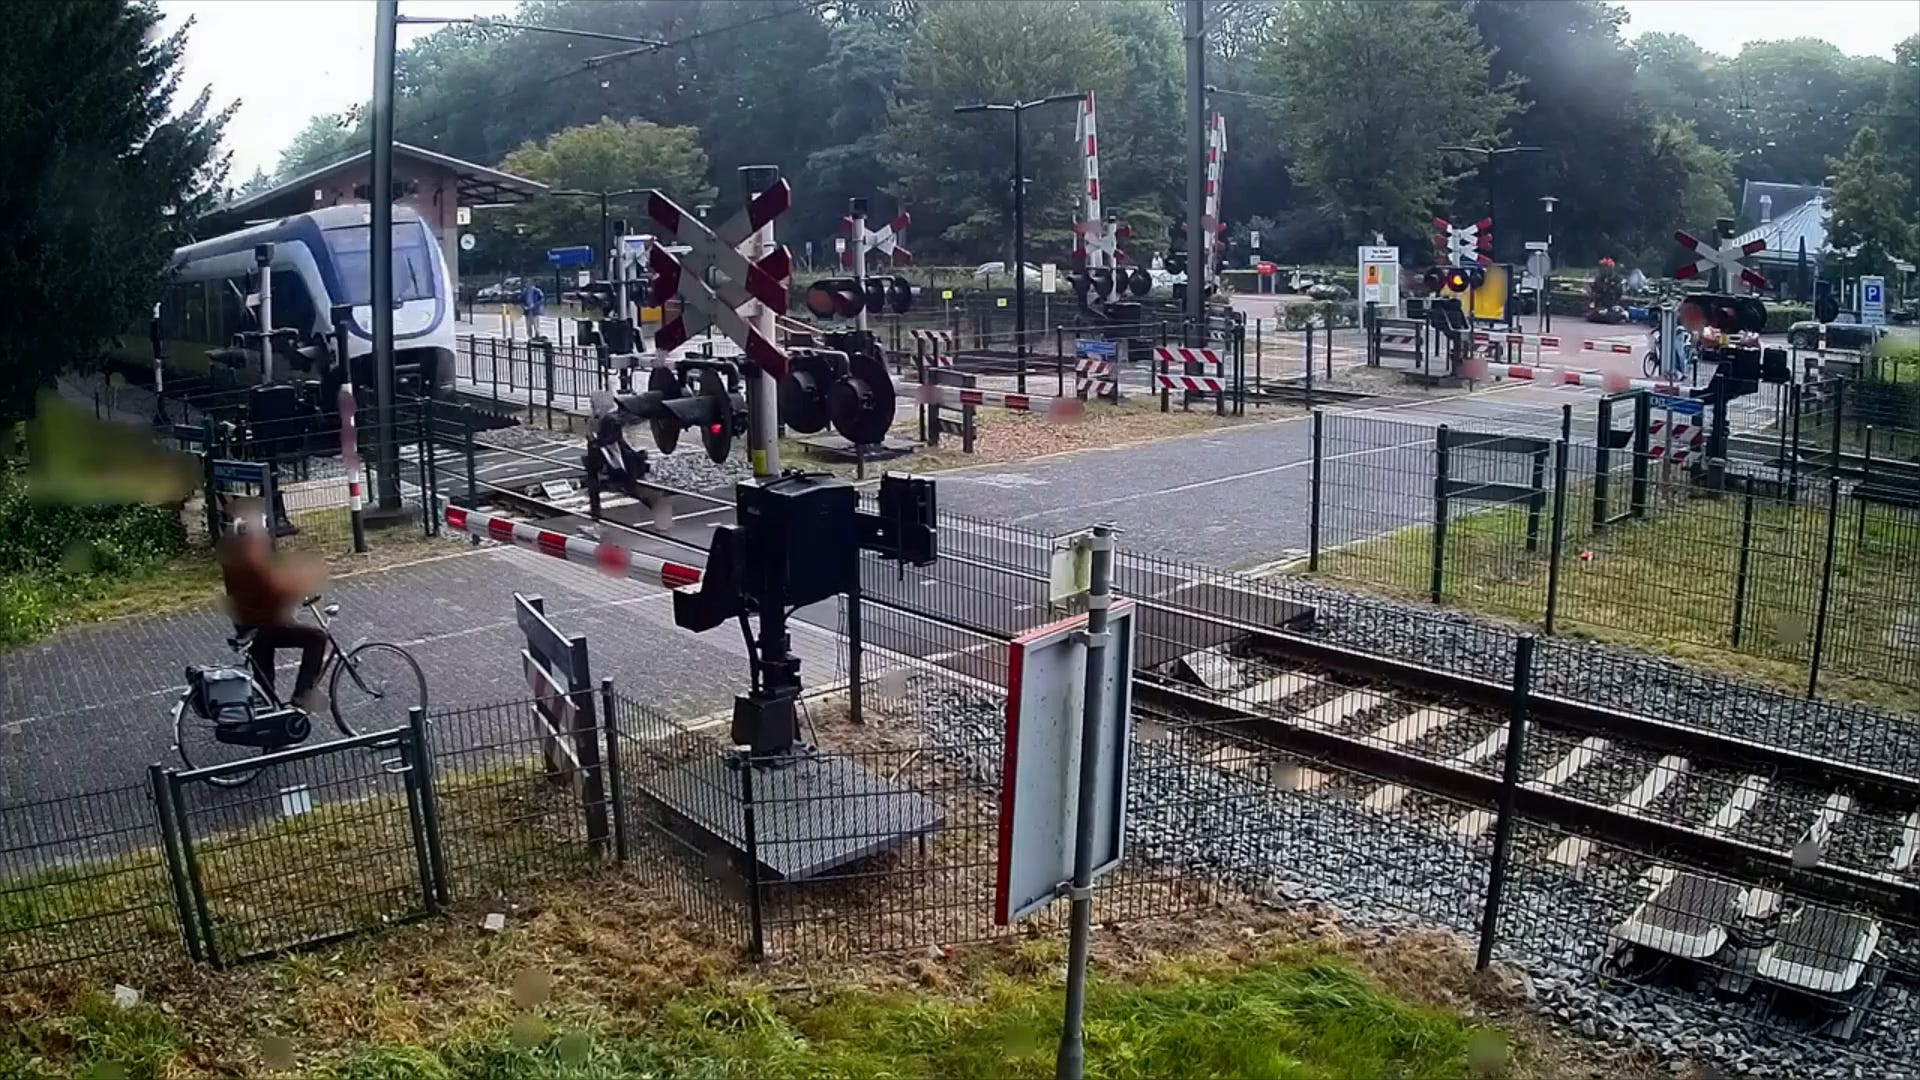 A woman in the Netherlands narrowly avoids being hit by a train while crossing tracks